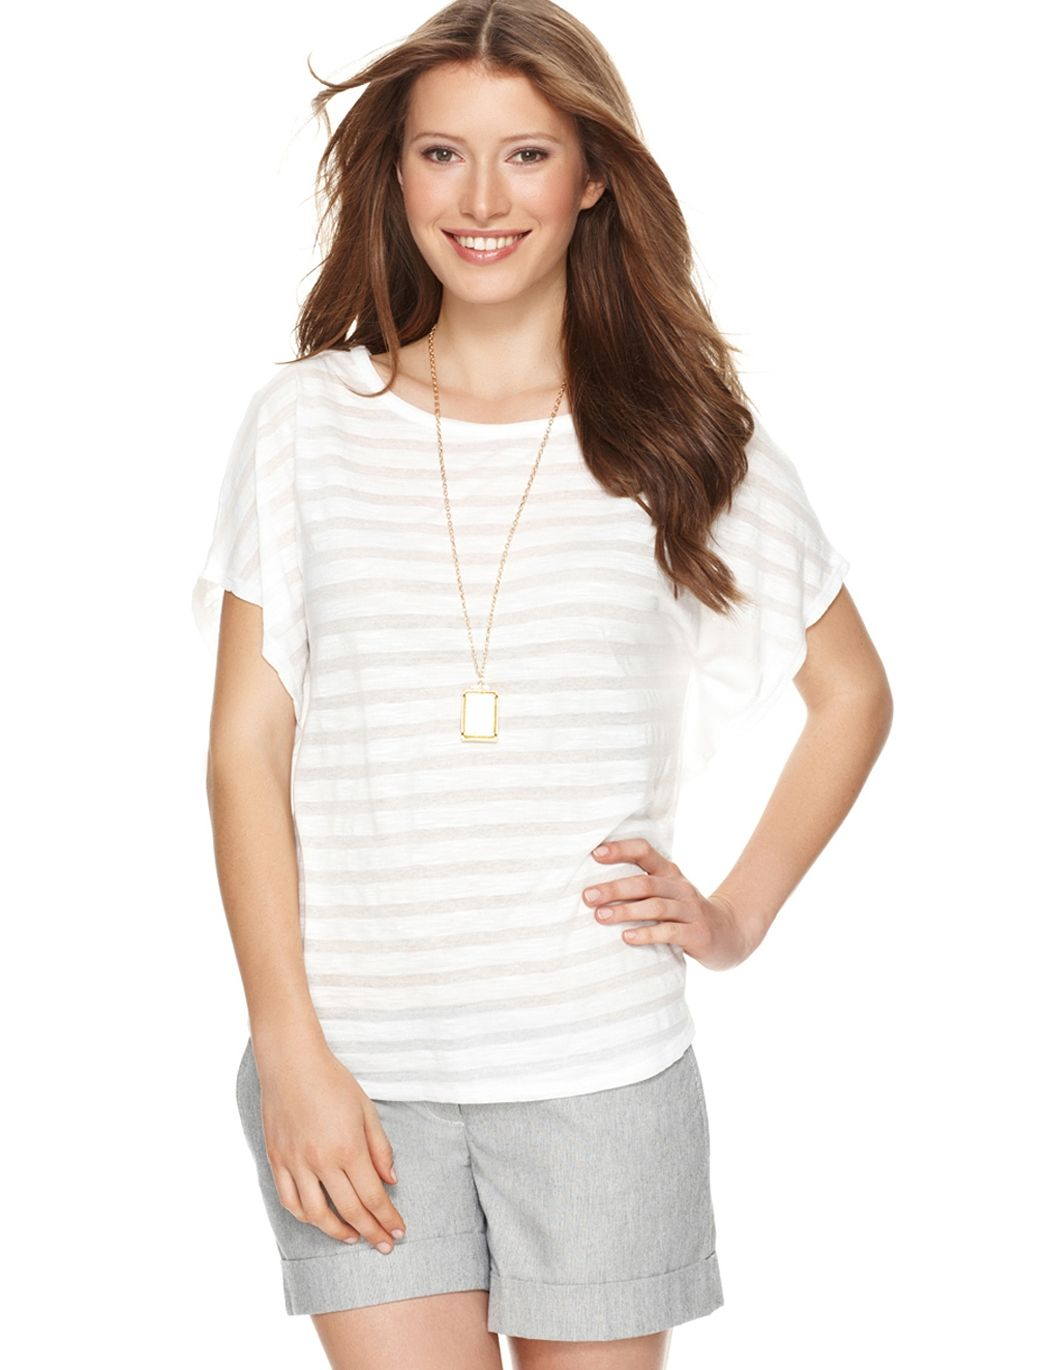 The Limited Ghostly Stripe Top, $22.14